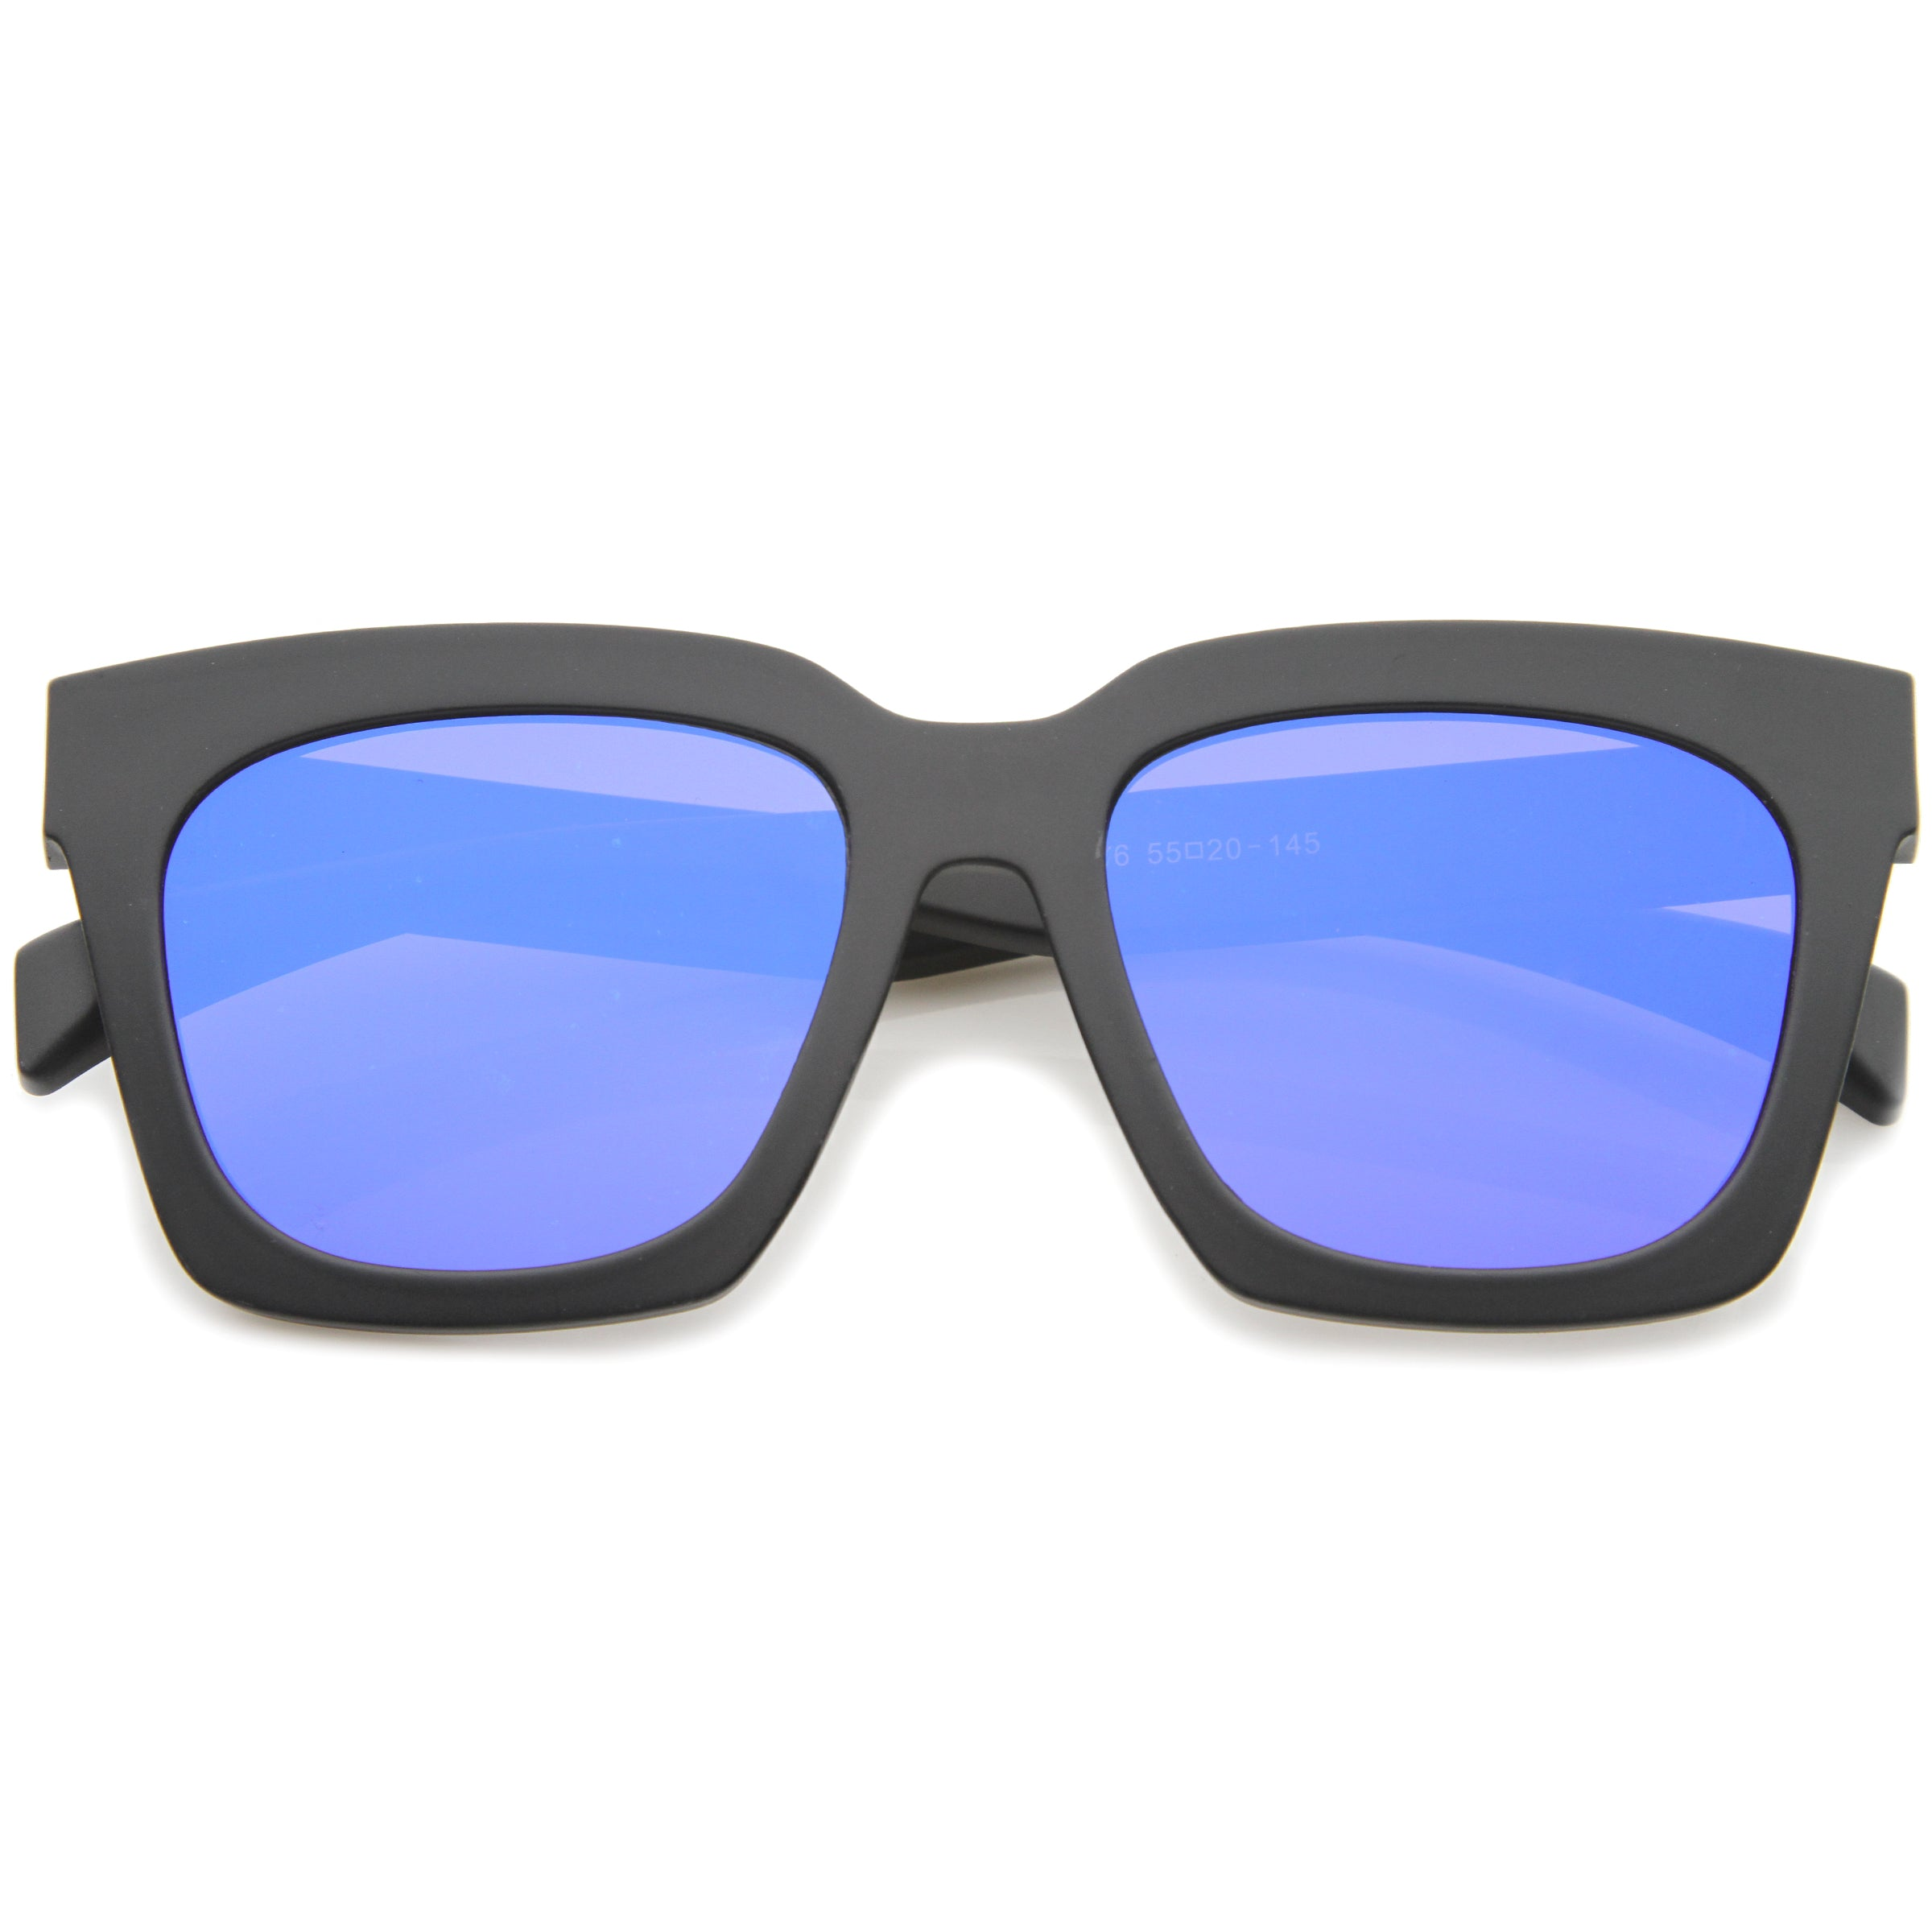 Retro Matte Horn Rimmed Colored Mirror Flat Lens Oversize Square Sunglasses 54mm - sunglass.la - 1